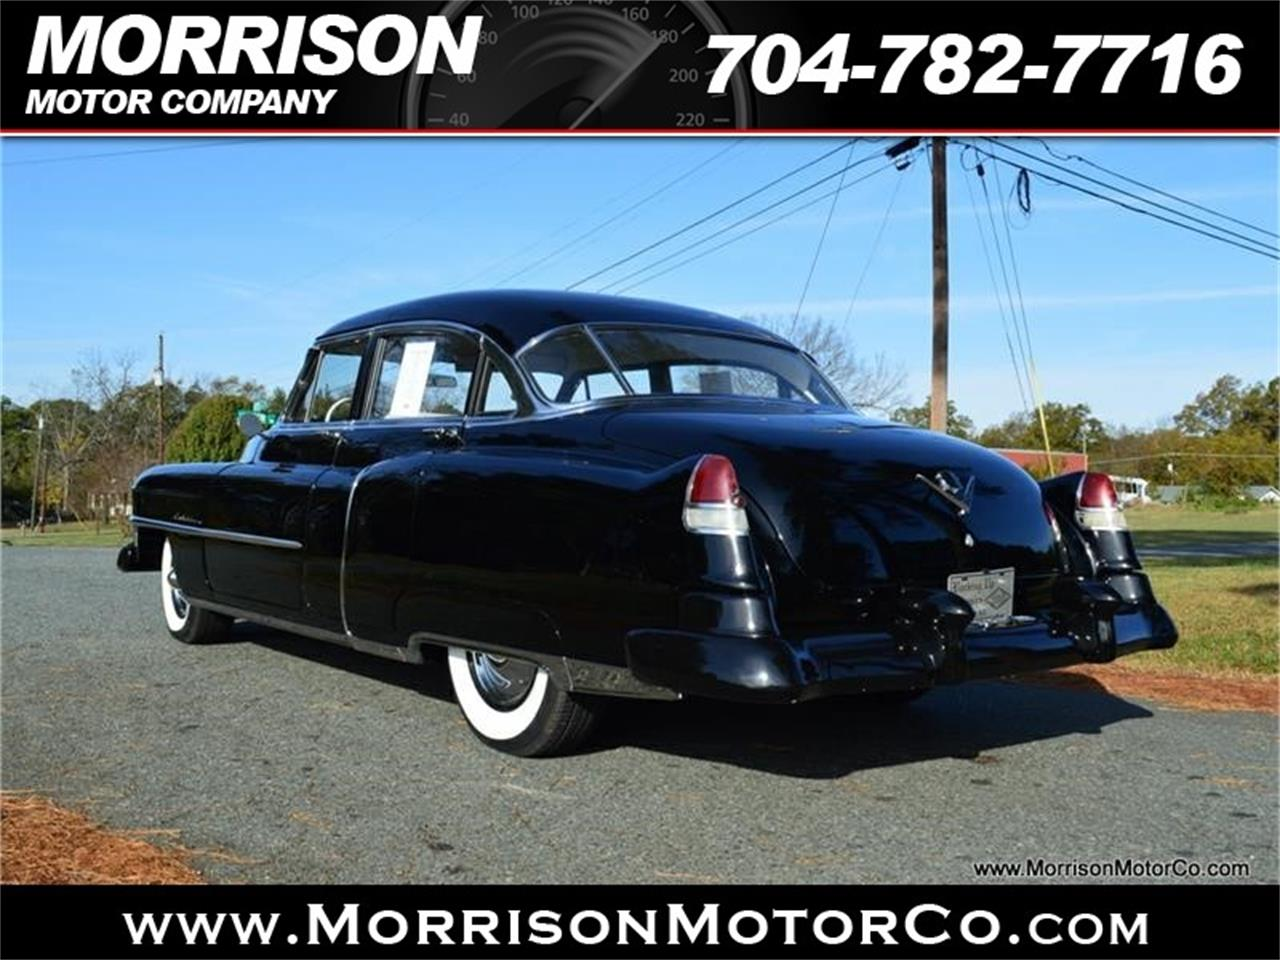 Large Picture of Classic 1951 Cadillac DeVille located in Concord North Carolina - $19,900.00 - MBTG